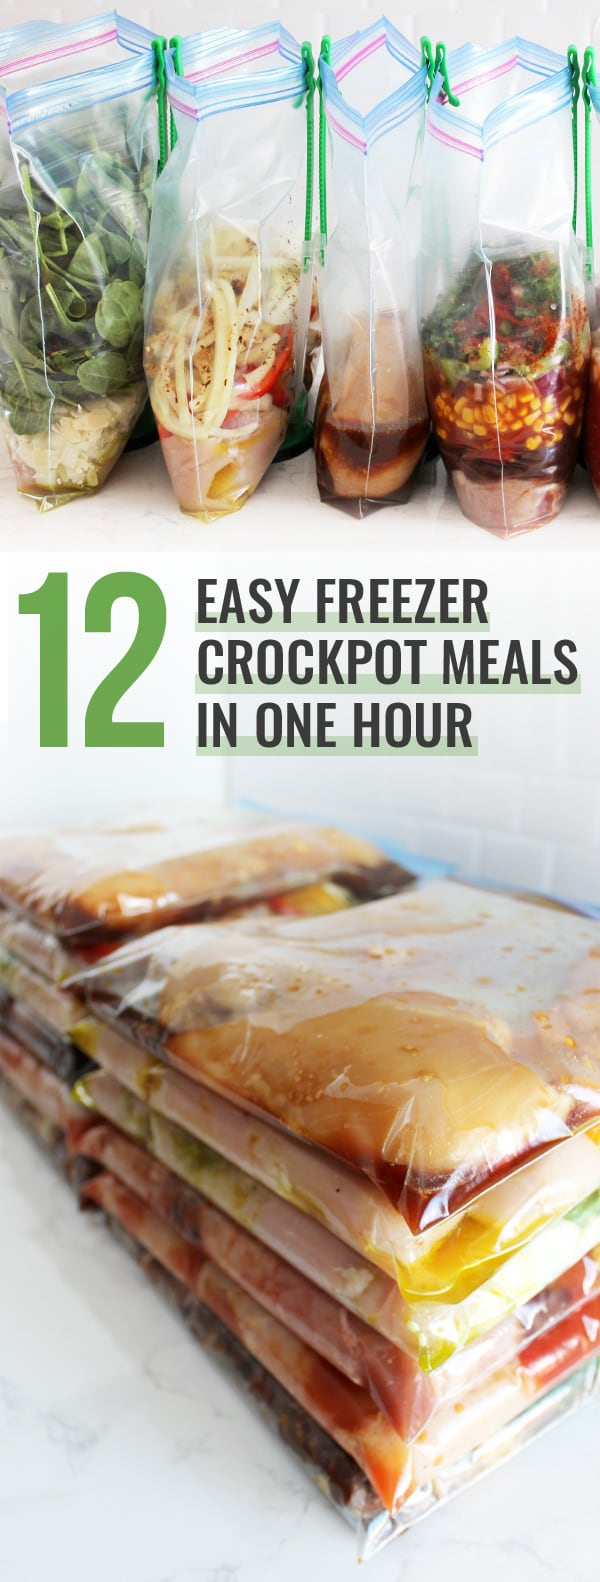 12 Easy Freezer Crockpot Meals in One Hour